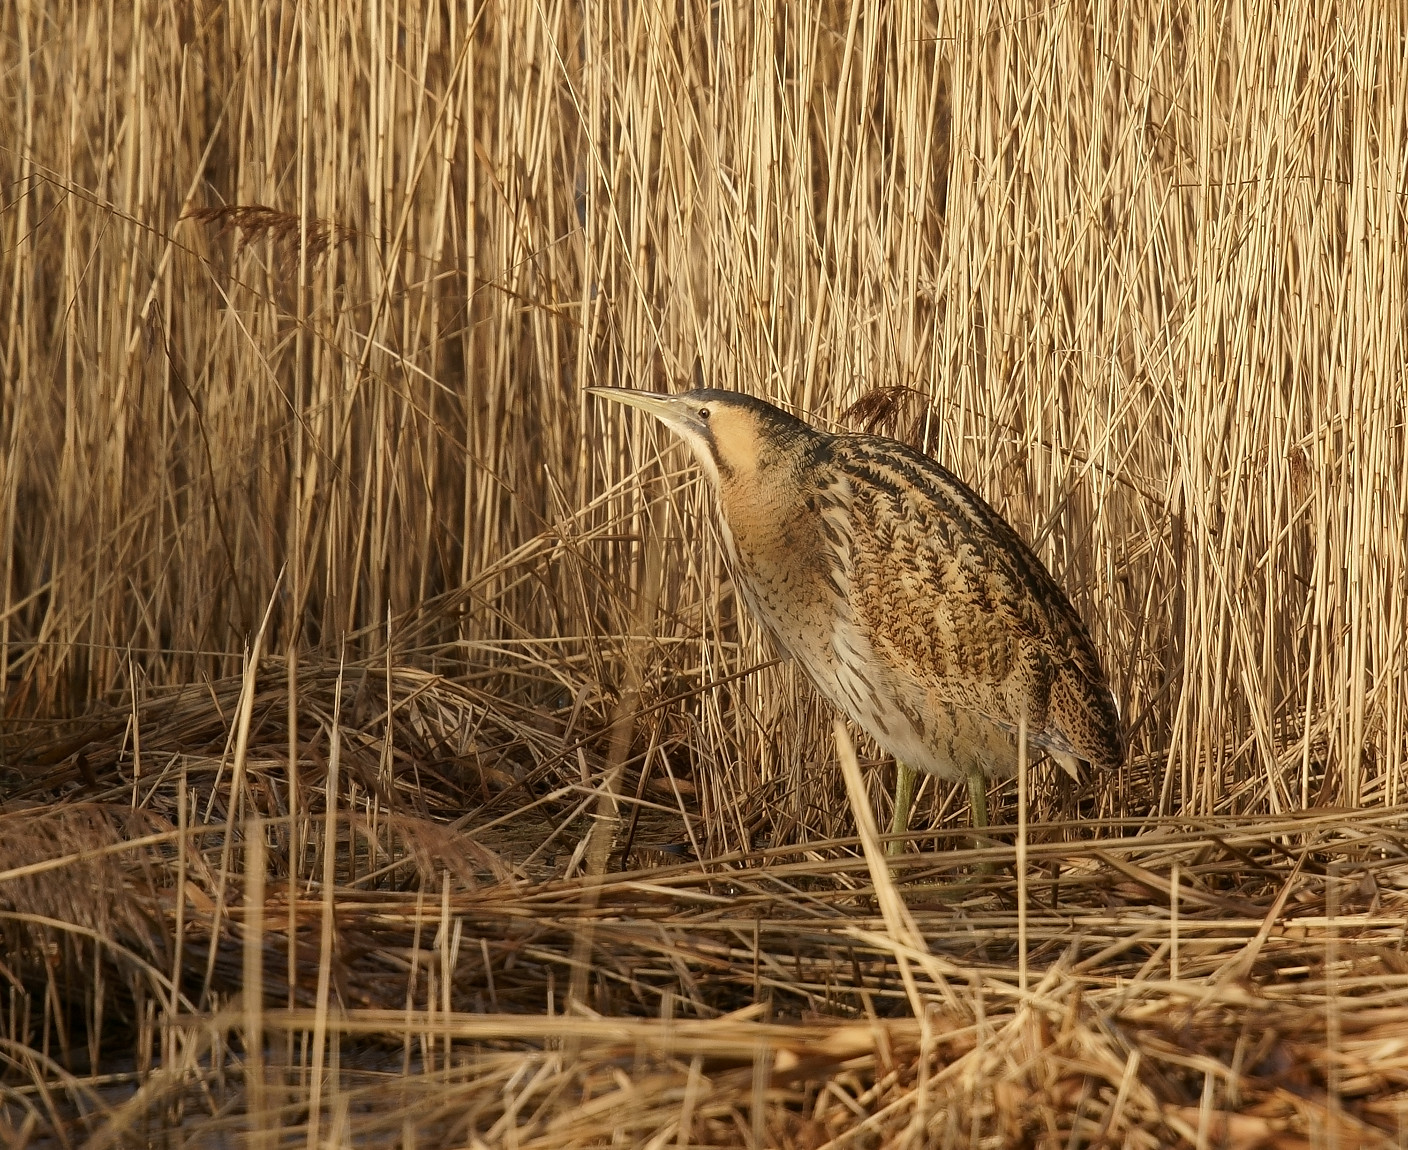 Bittern - always elusive and stealthy